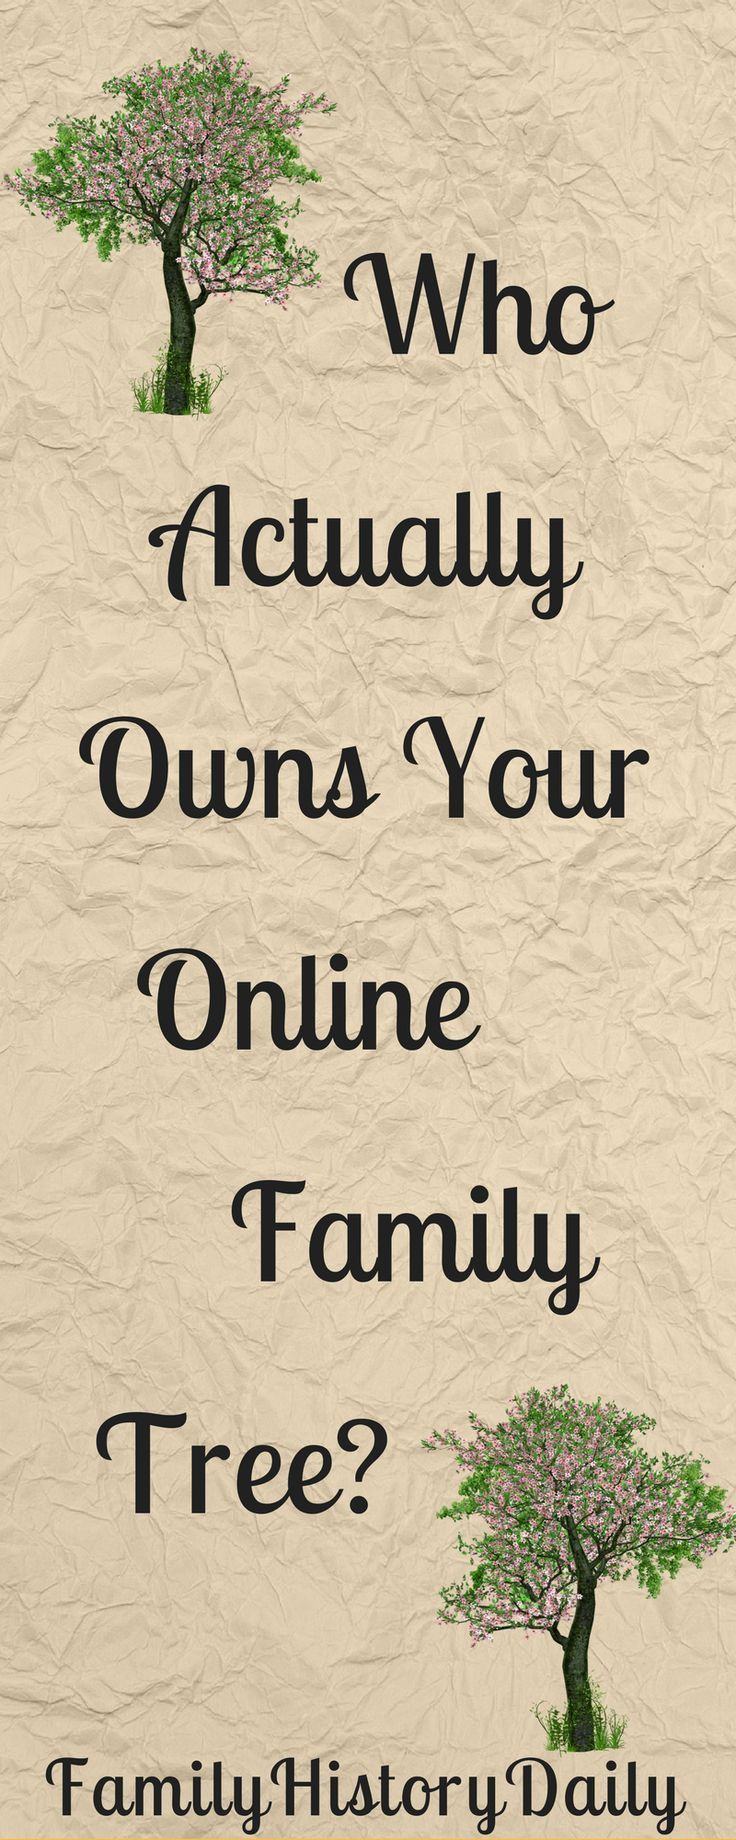 Genealogy Help: Do you know who actually owns the family tree you have online? Learn more about the privacy of your family history research stored on the internet.